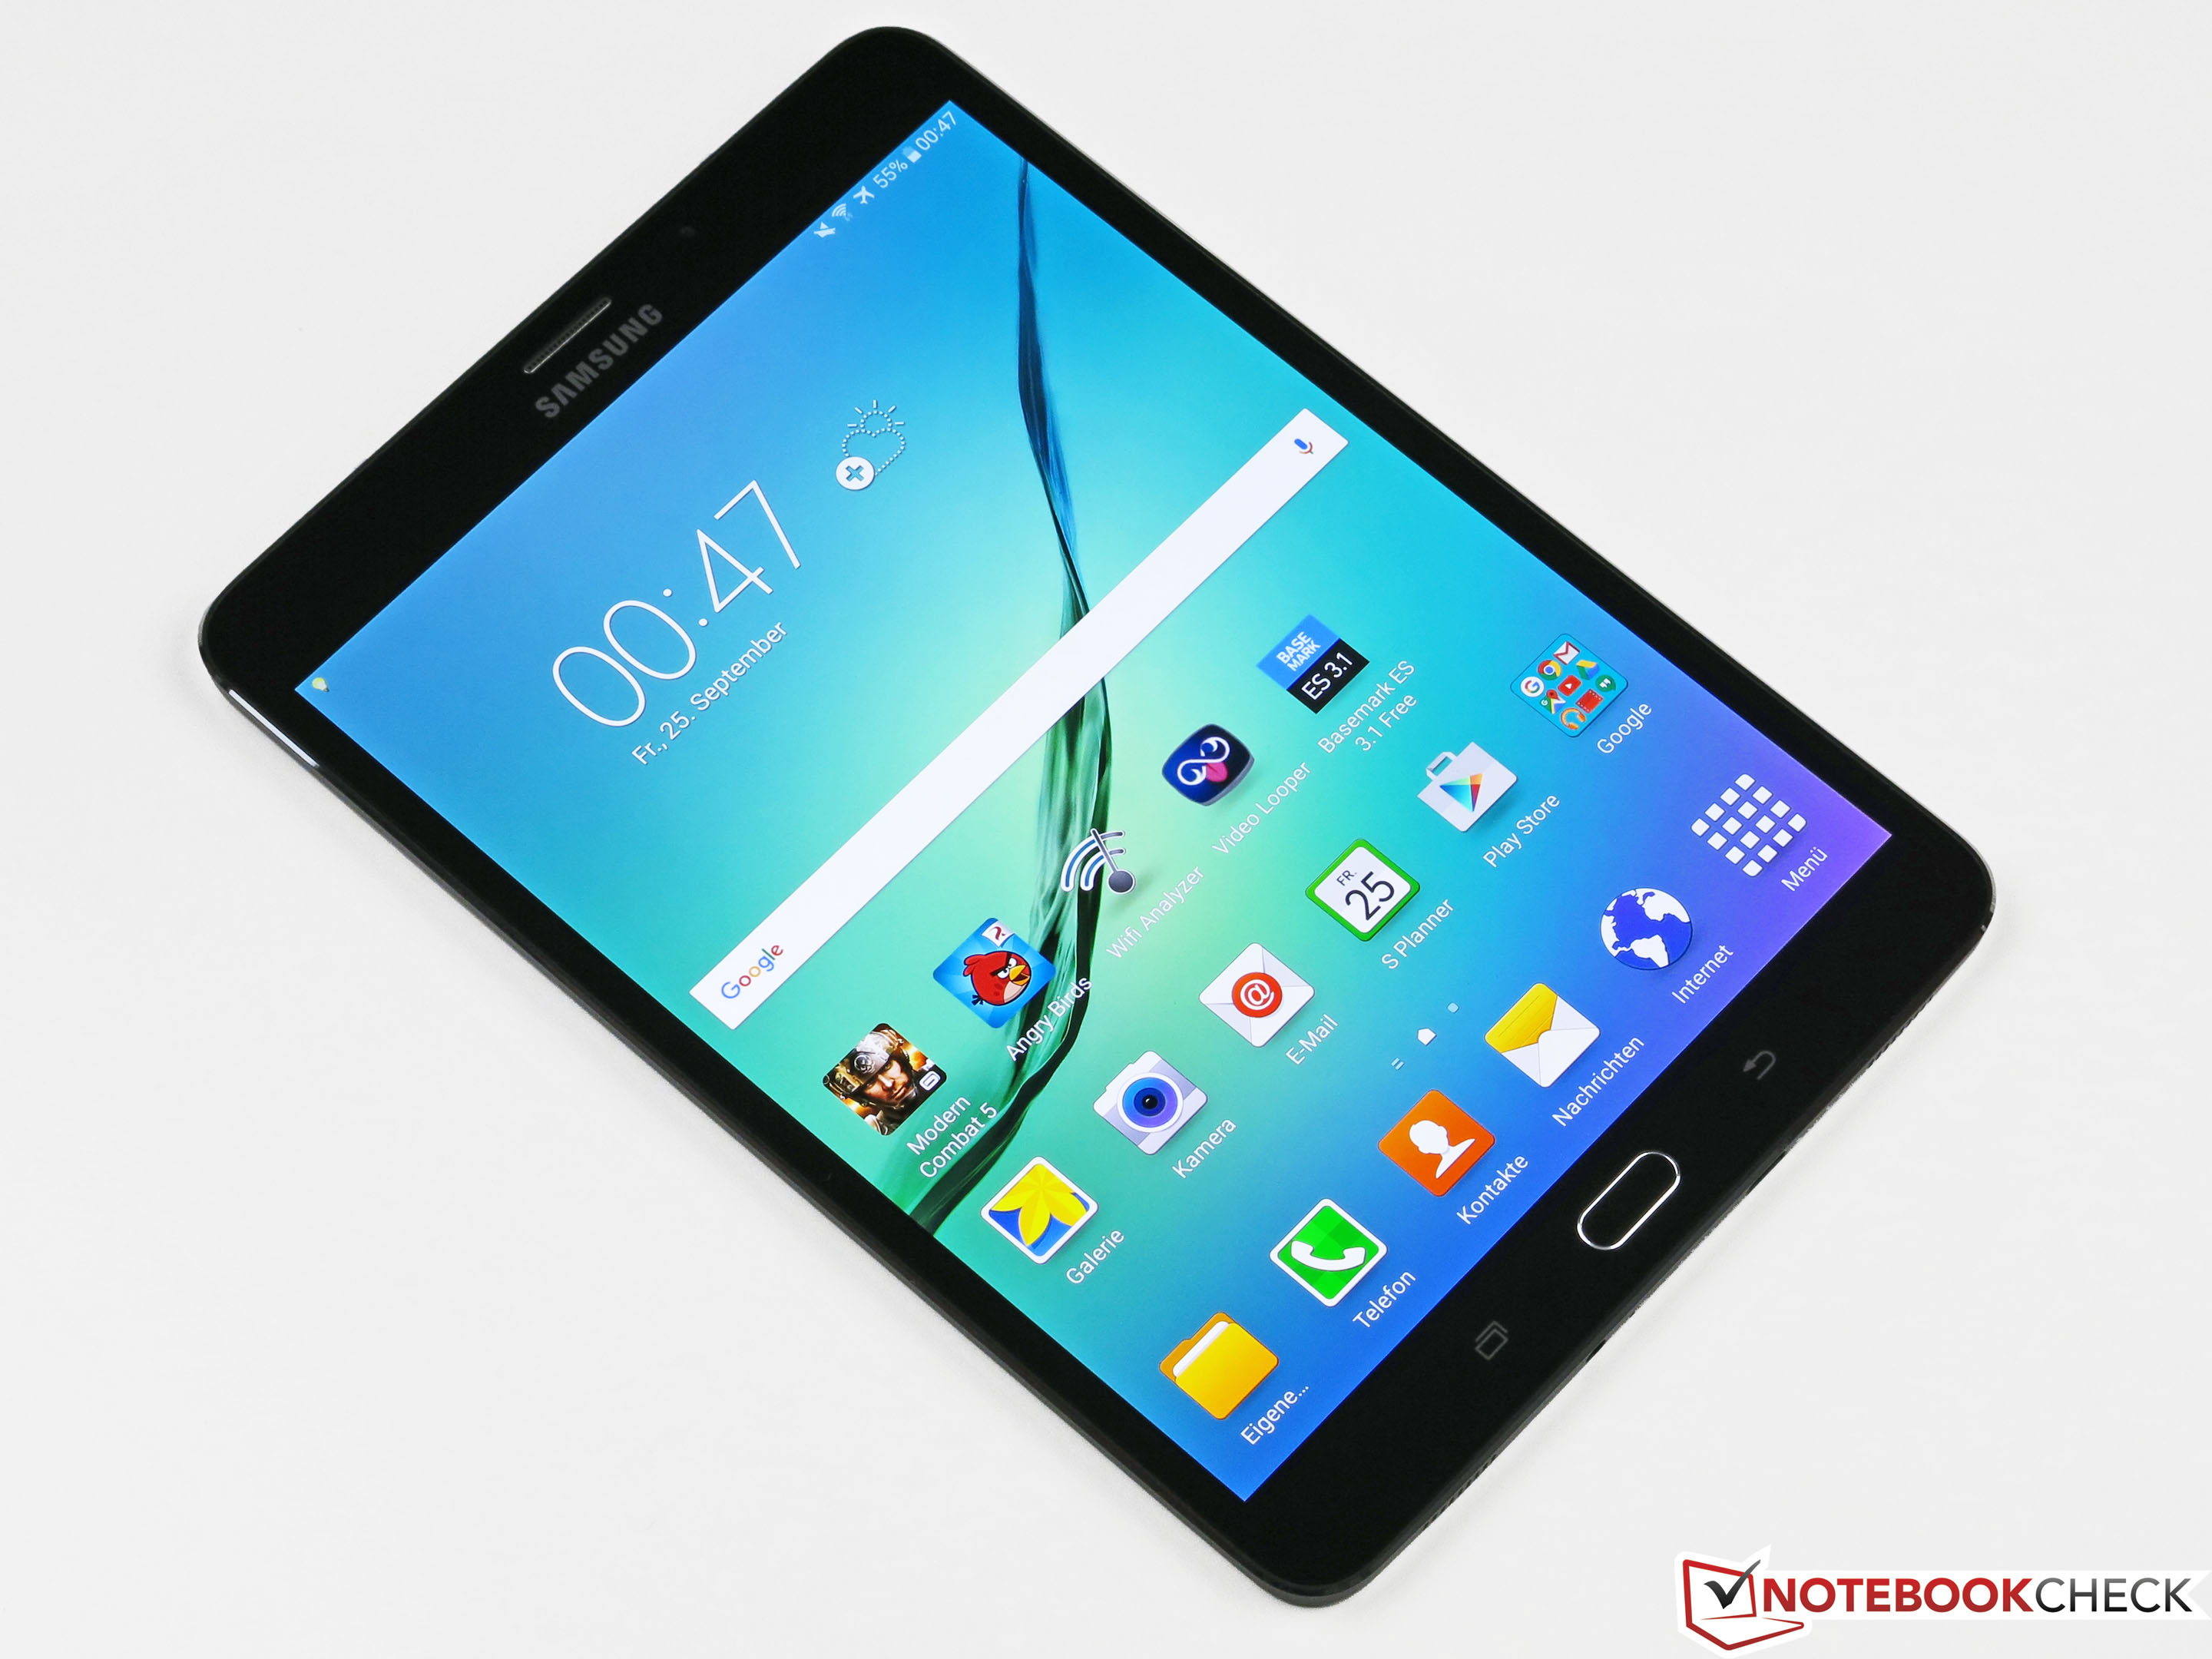 samsung galaxy tab s2 8 0 lte tablet review. Black Bedroom Furniture Sets. Home Design Ideas